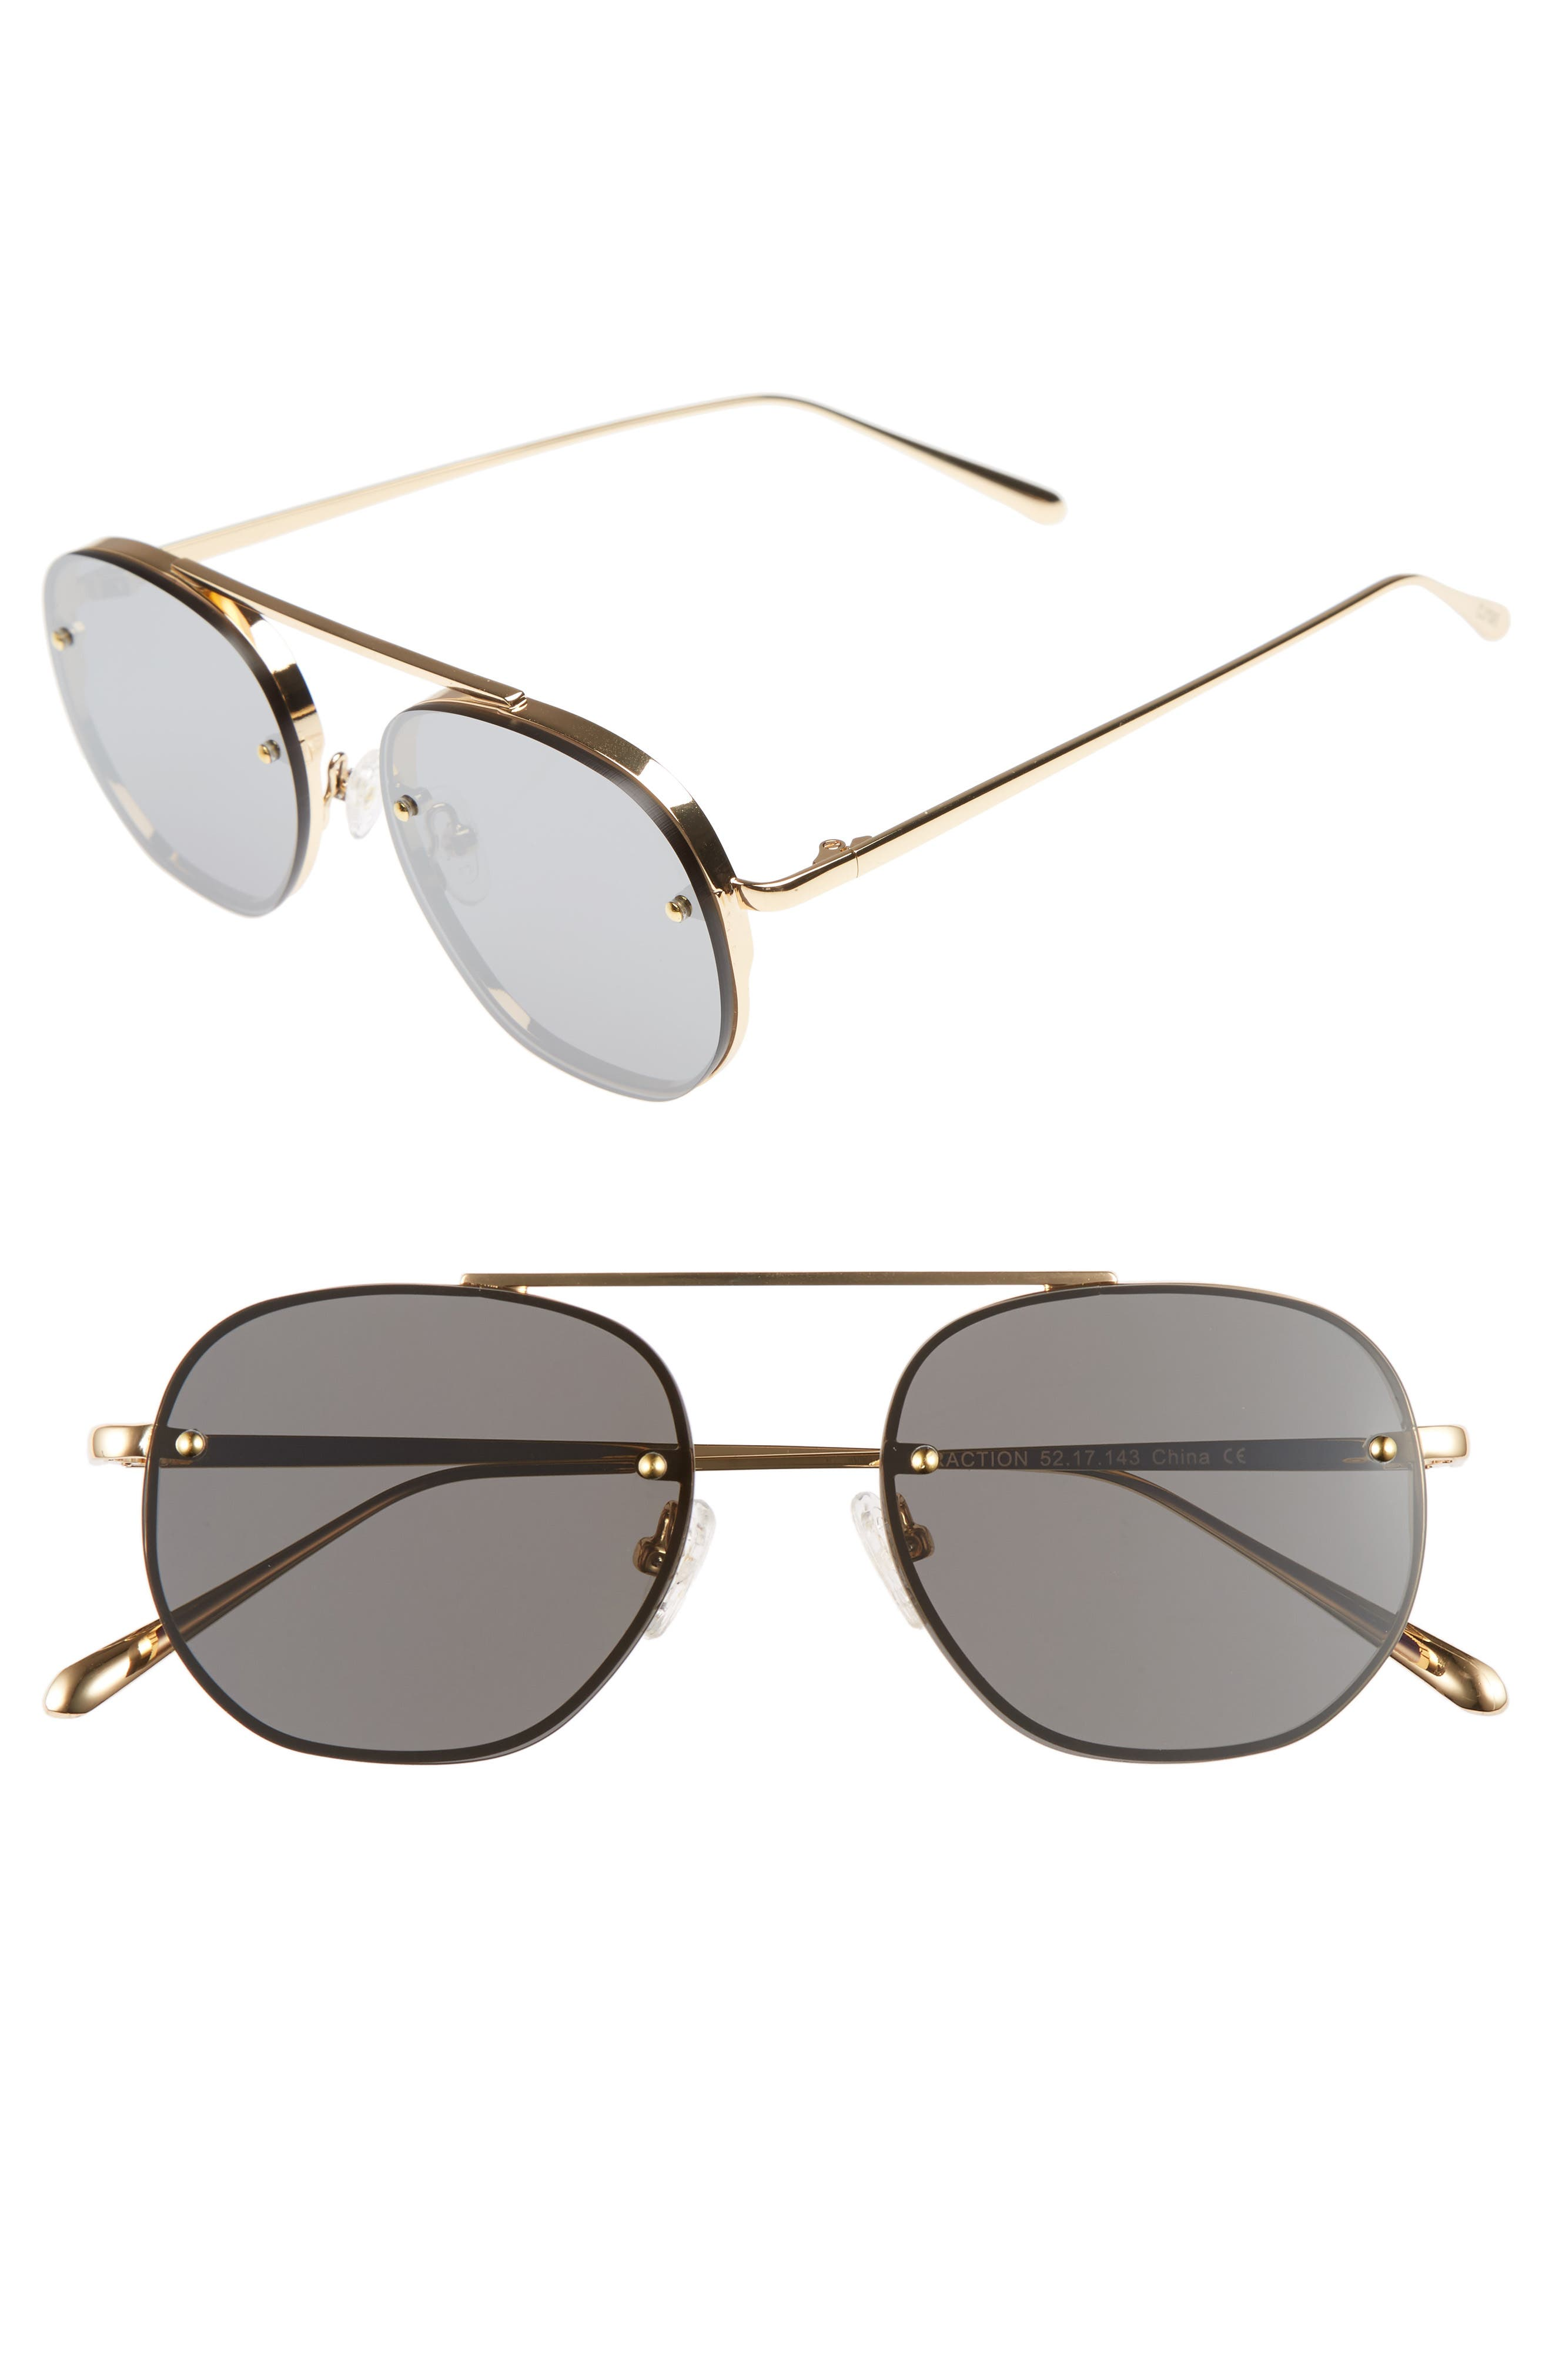 Alternate Image 1 Selected - Bonnie Clyde Traction 52mm Aviator Sunglasses